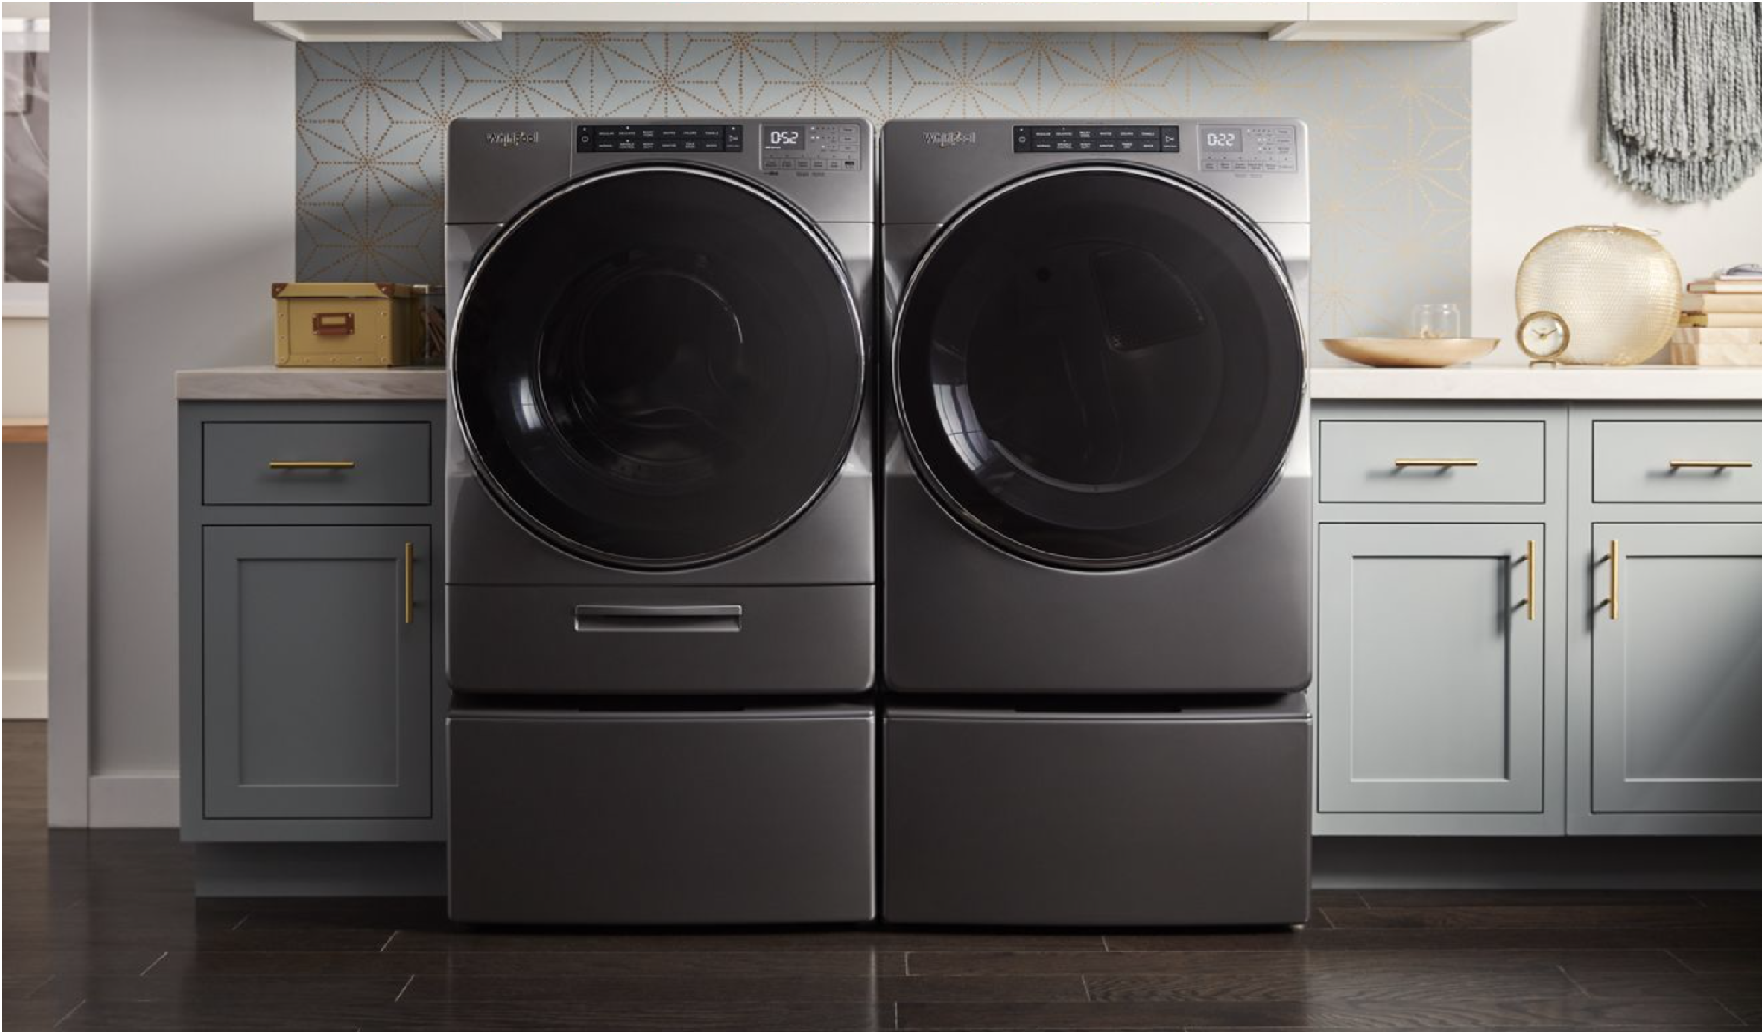 Image of side-by-side Whirlpool laundry pair with pedestal drawers